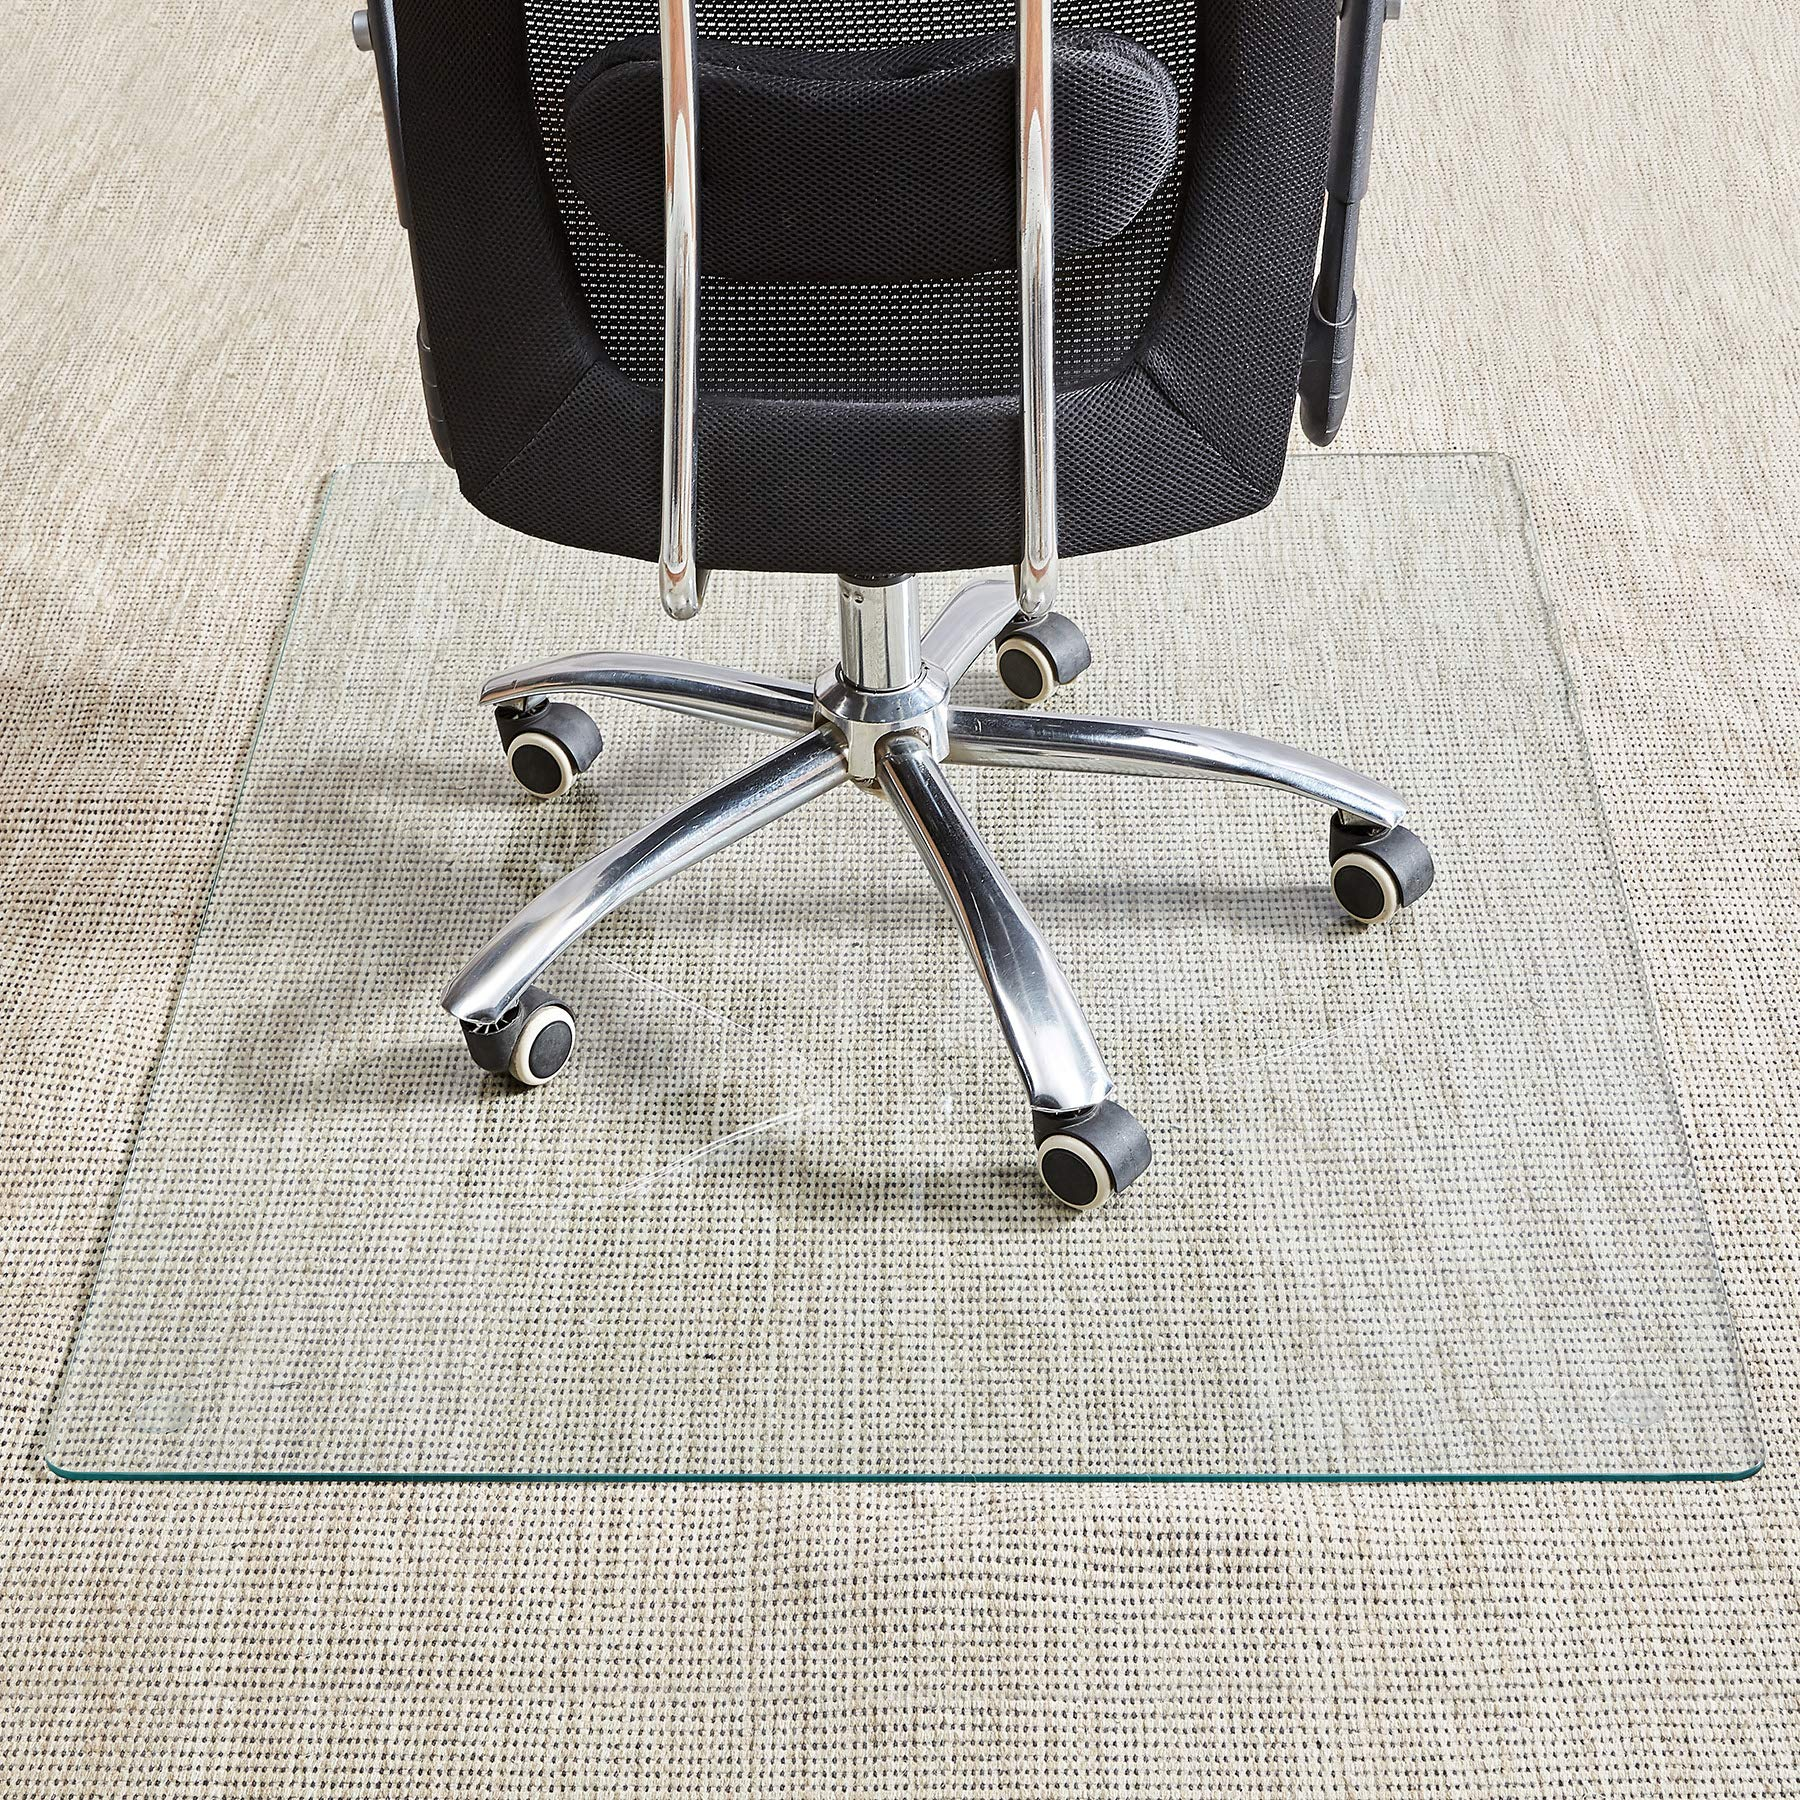 Tempered Glass Chair Mat, 36''×46'', Office Chair Mat Carpet & Hardwood Floor, Chair Mats for Carpeted Floor, Chair Mat for Hardwood Floor, Desk Chair Mat, 4 Anti-Slip Pads by Rose Home Fashion